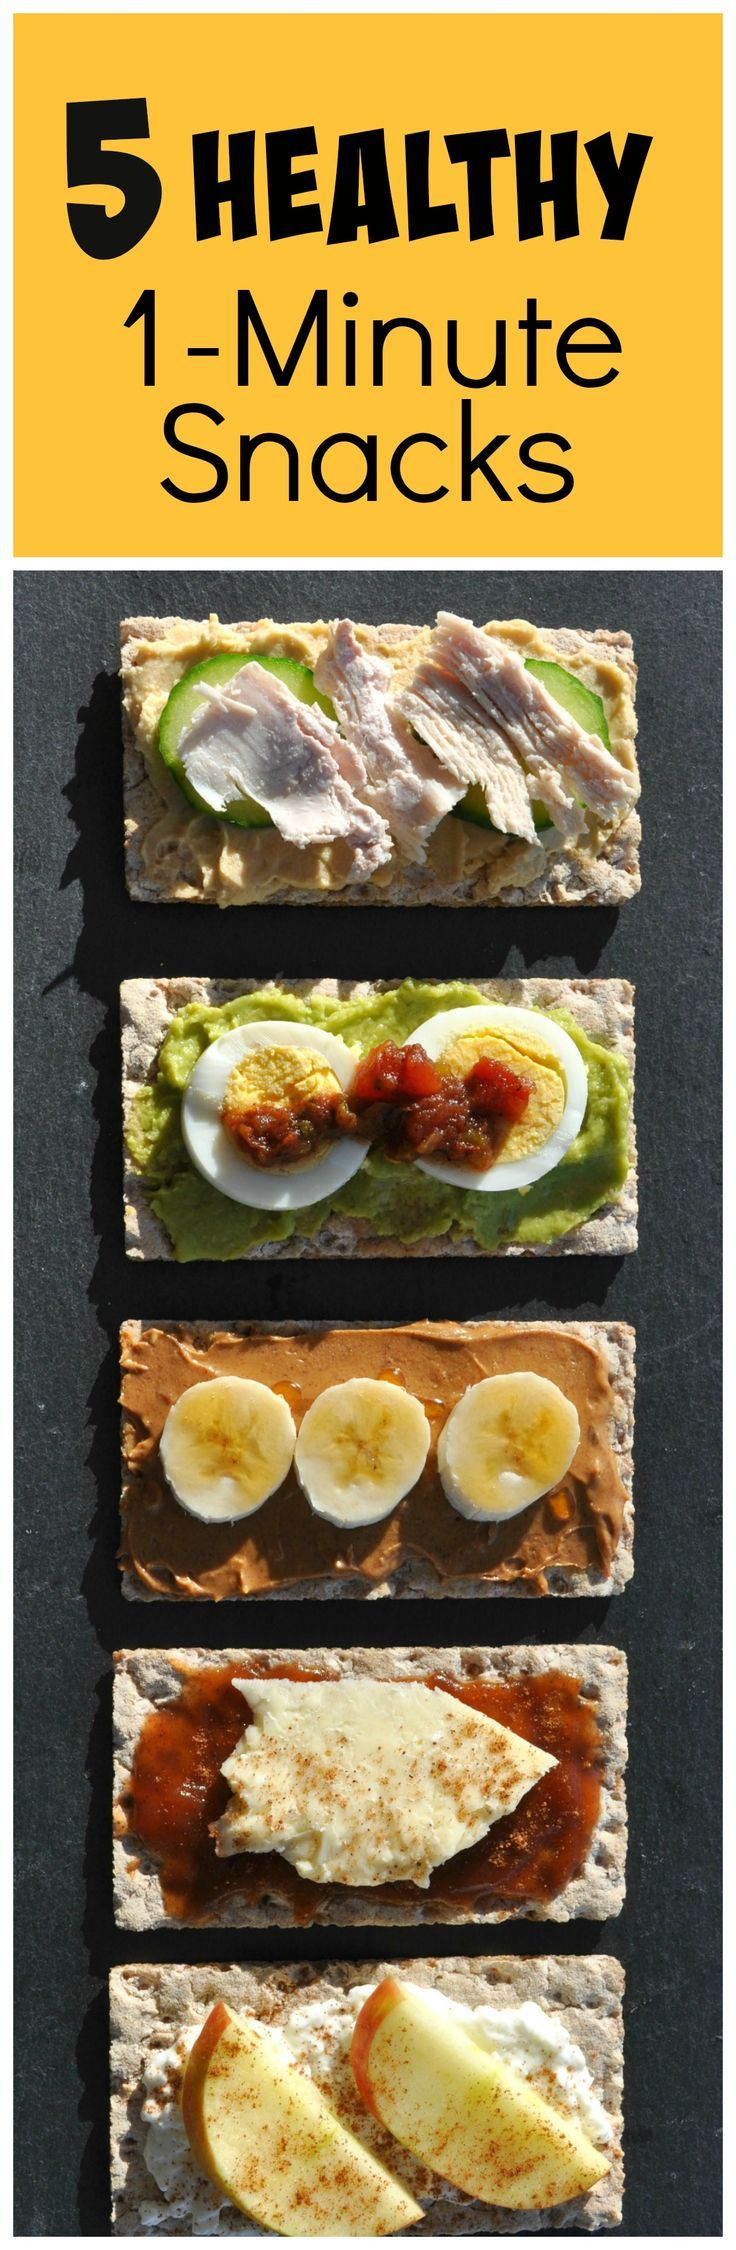 5 Healthy Snack options that are ready in 1 Minute (or less)!